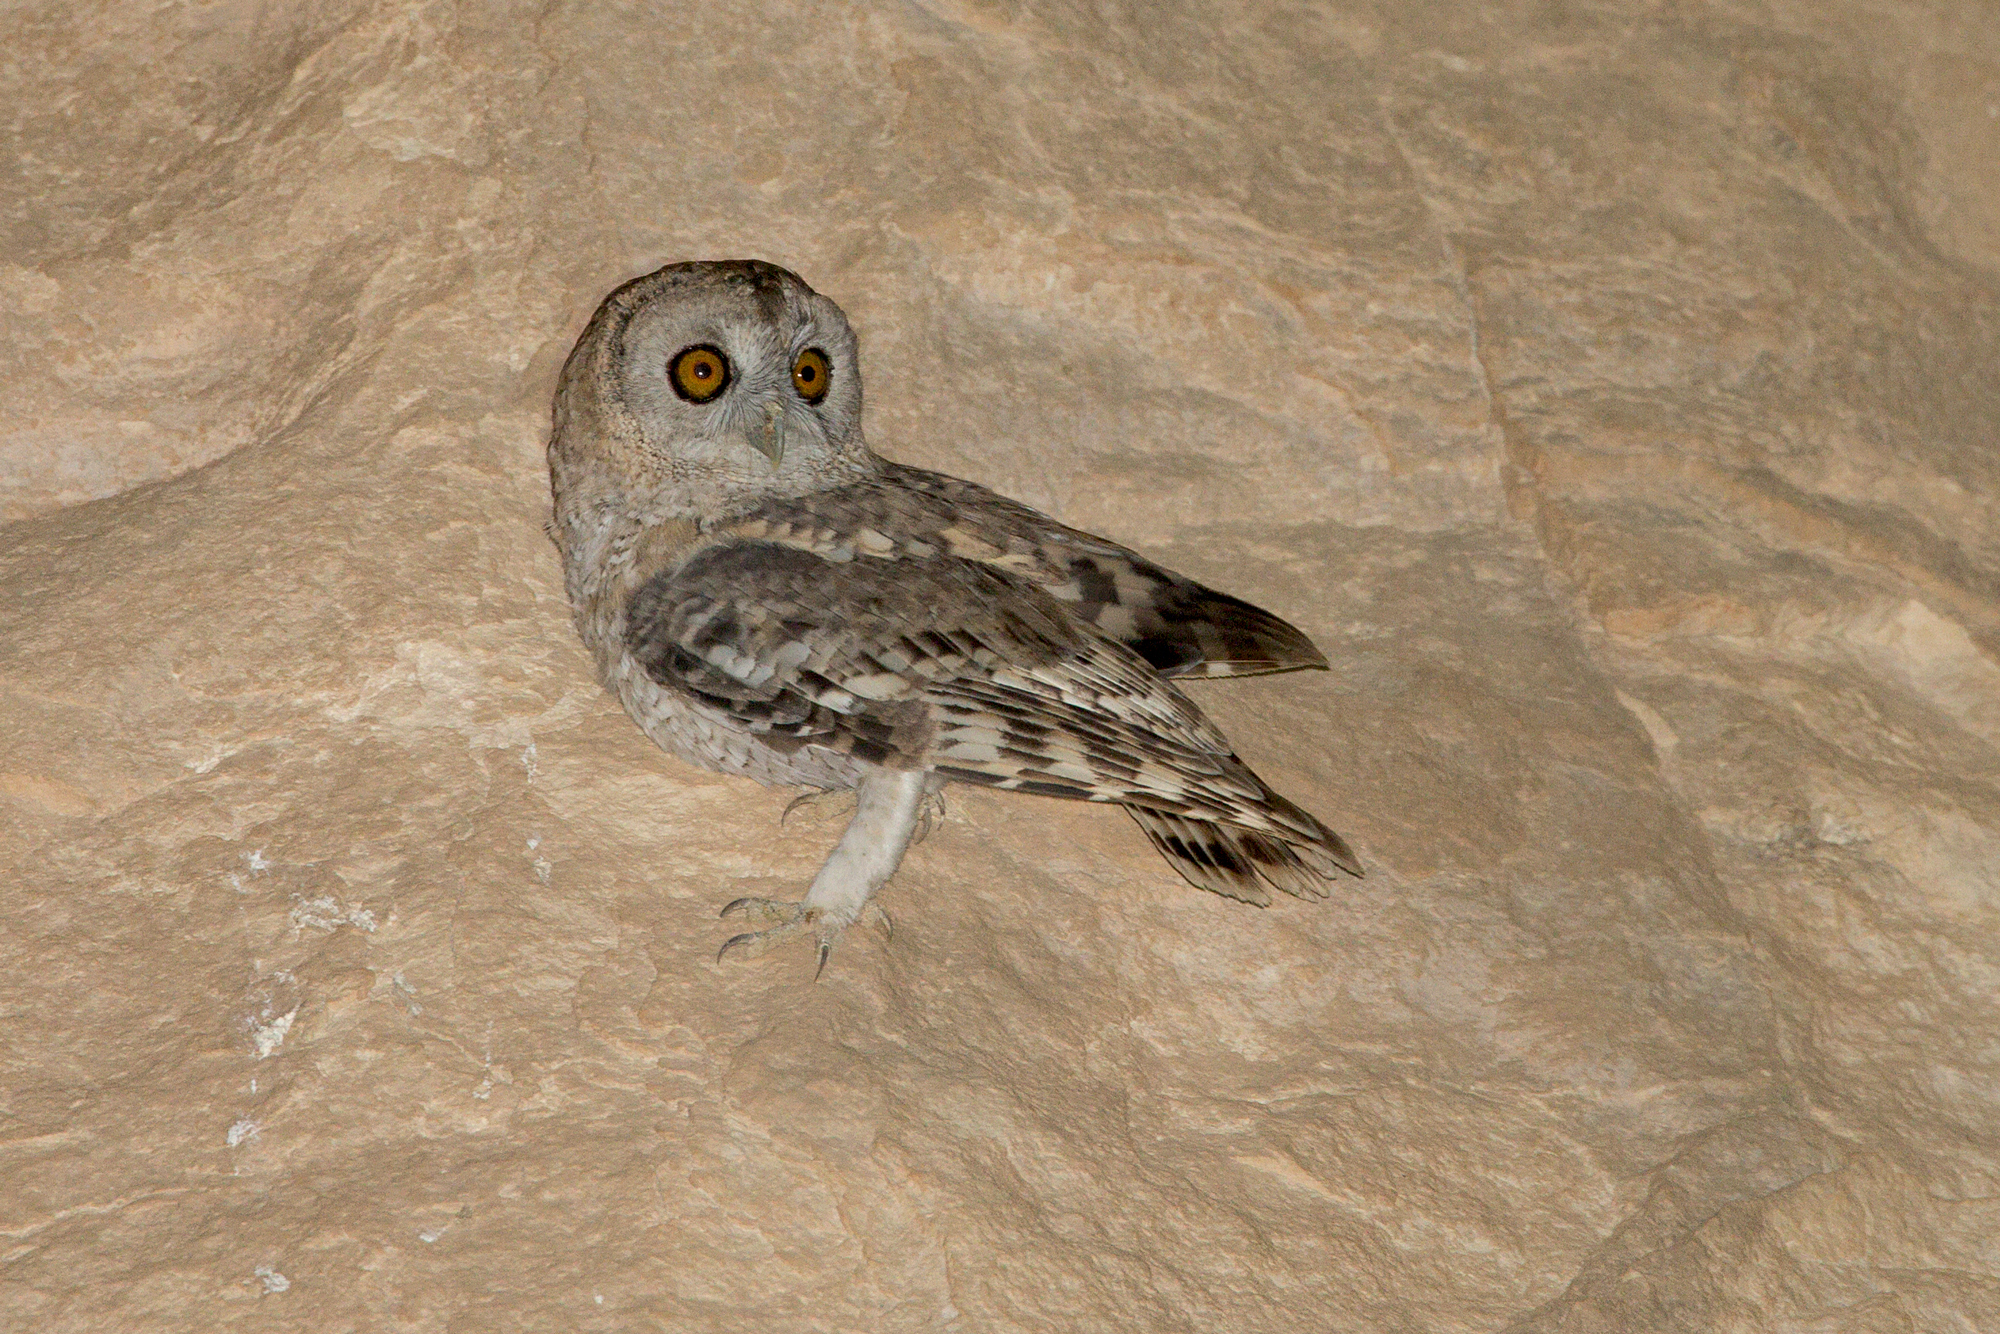 Desert Owl is one of our main targets on this itinerary.